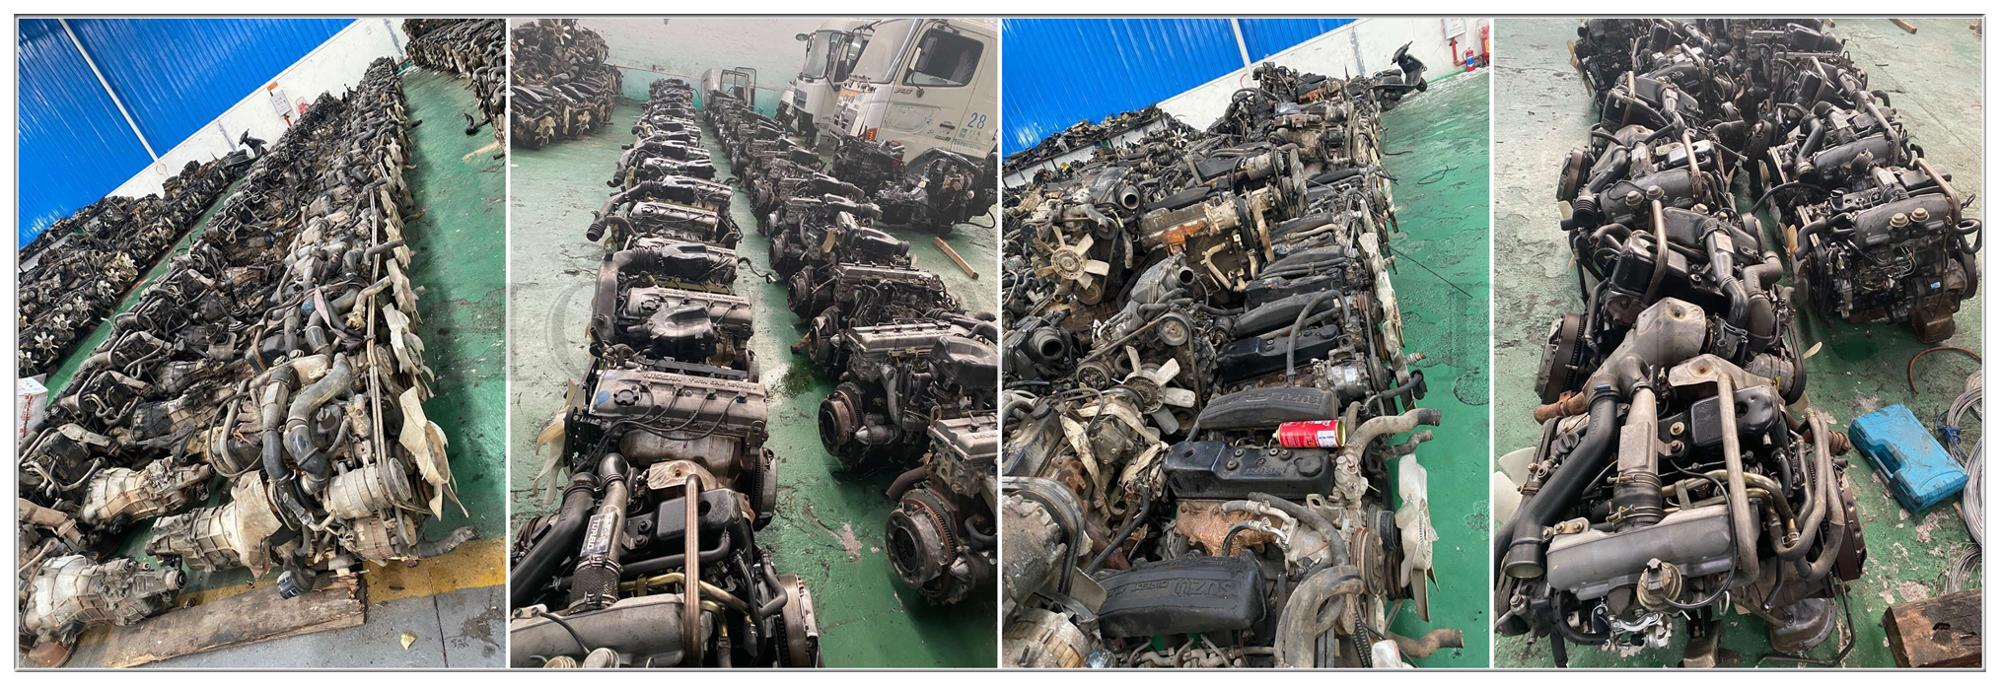 OEM quality Chinese engine 3C for sale